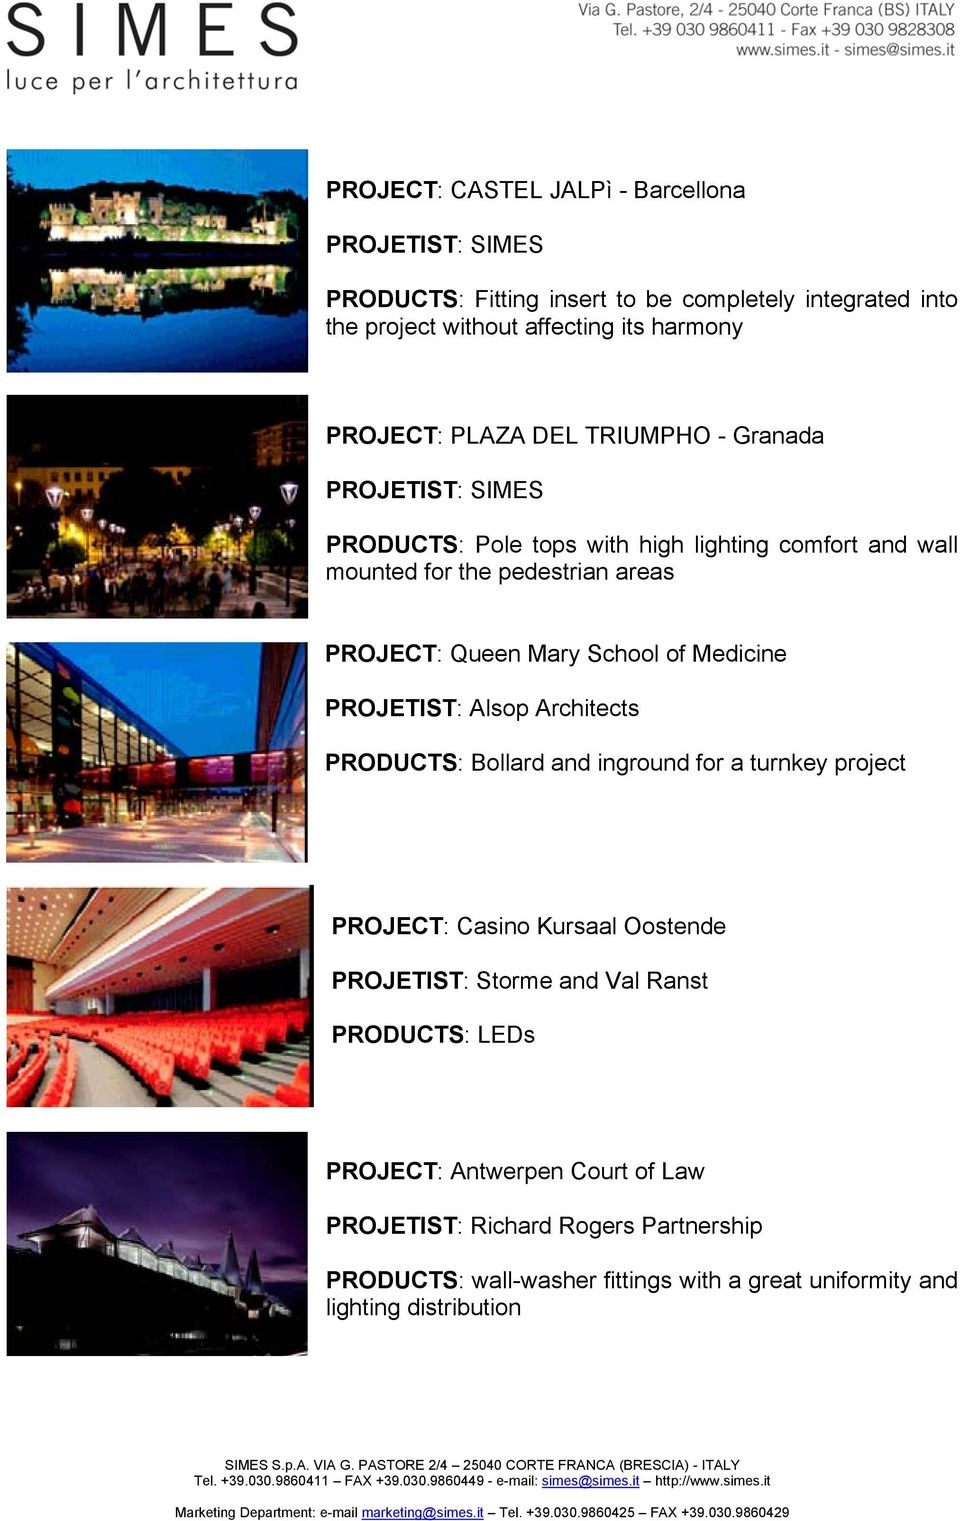 PROJETIST: Alsop Architects PRODUCTS: Bollard and inground for a turnkey project PROJECT: Casino Kursaal Oostende PROJETIST: Storme and Val Ranst